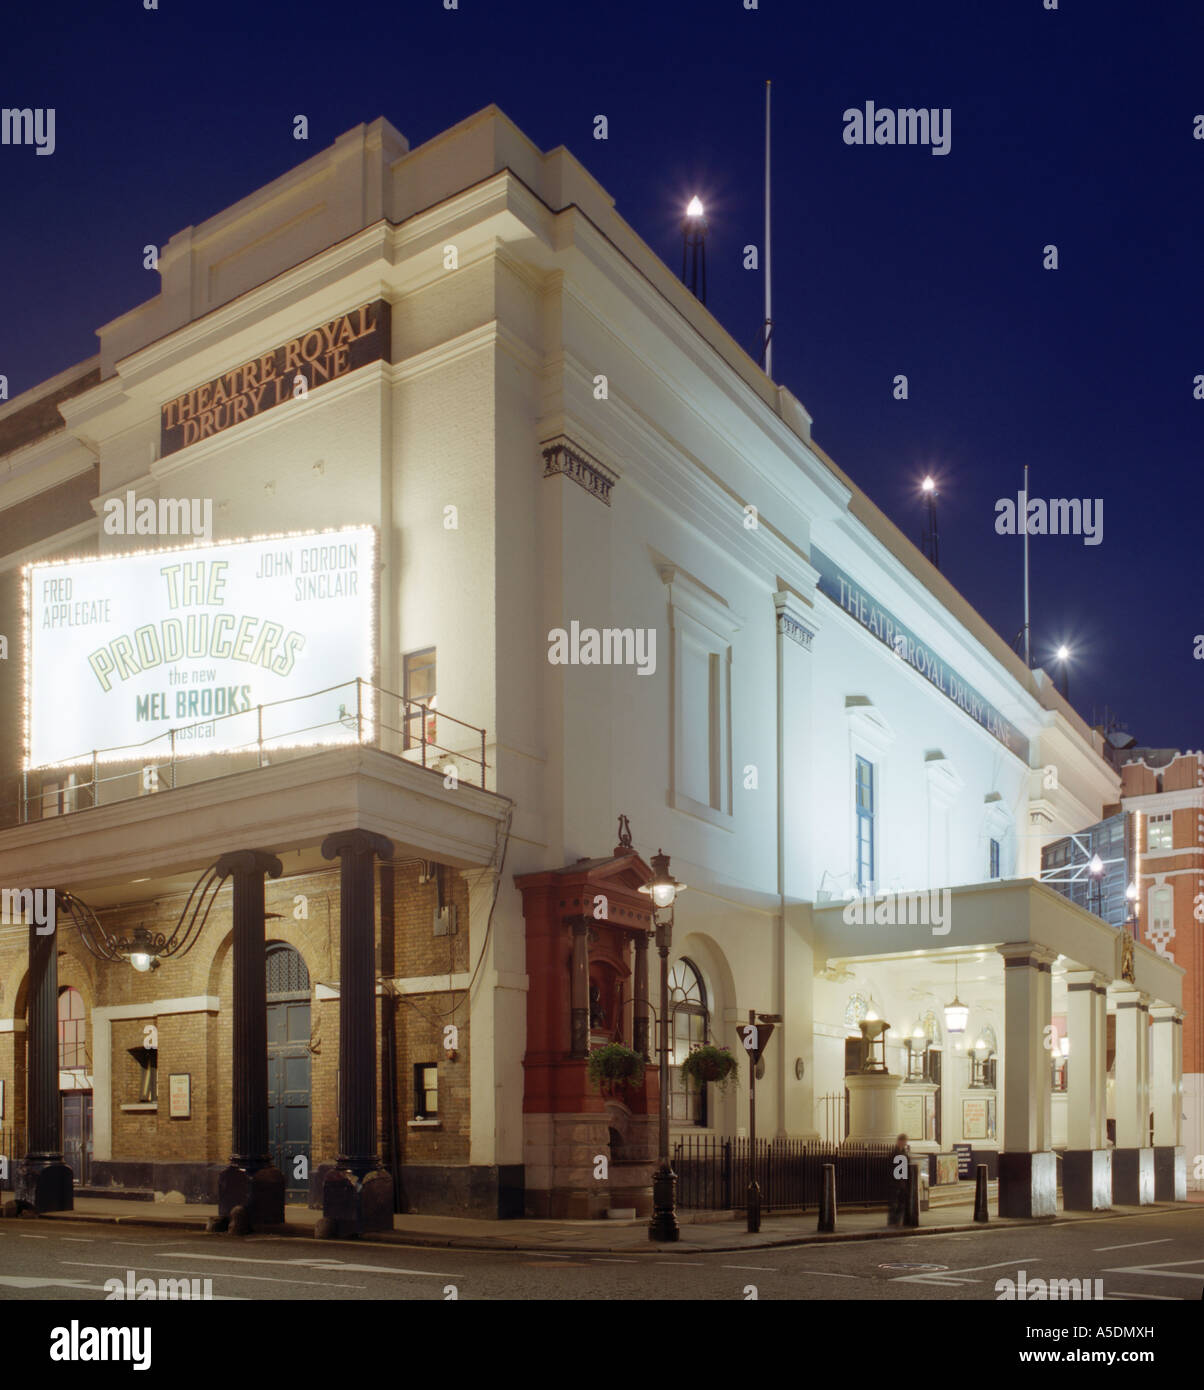 Theatre Royal Drury Lane in London at Night, Playing 'The Producers' - Stock Image